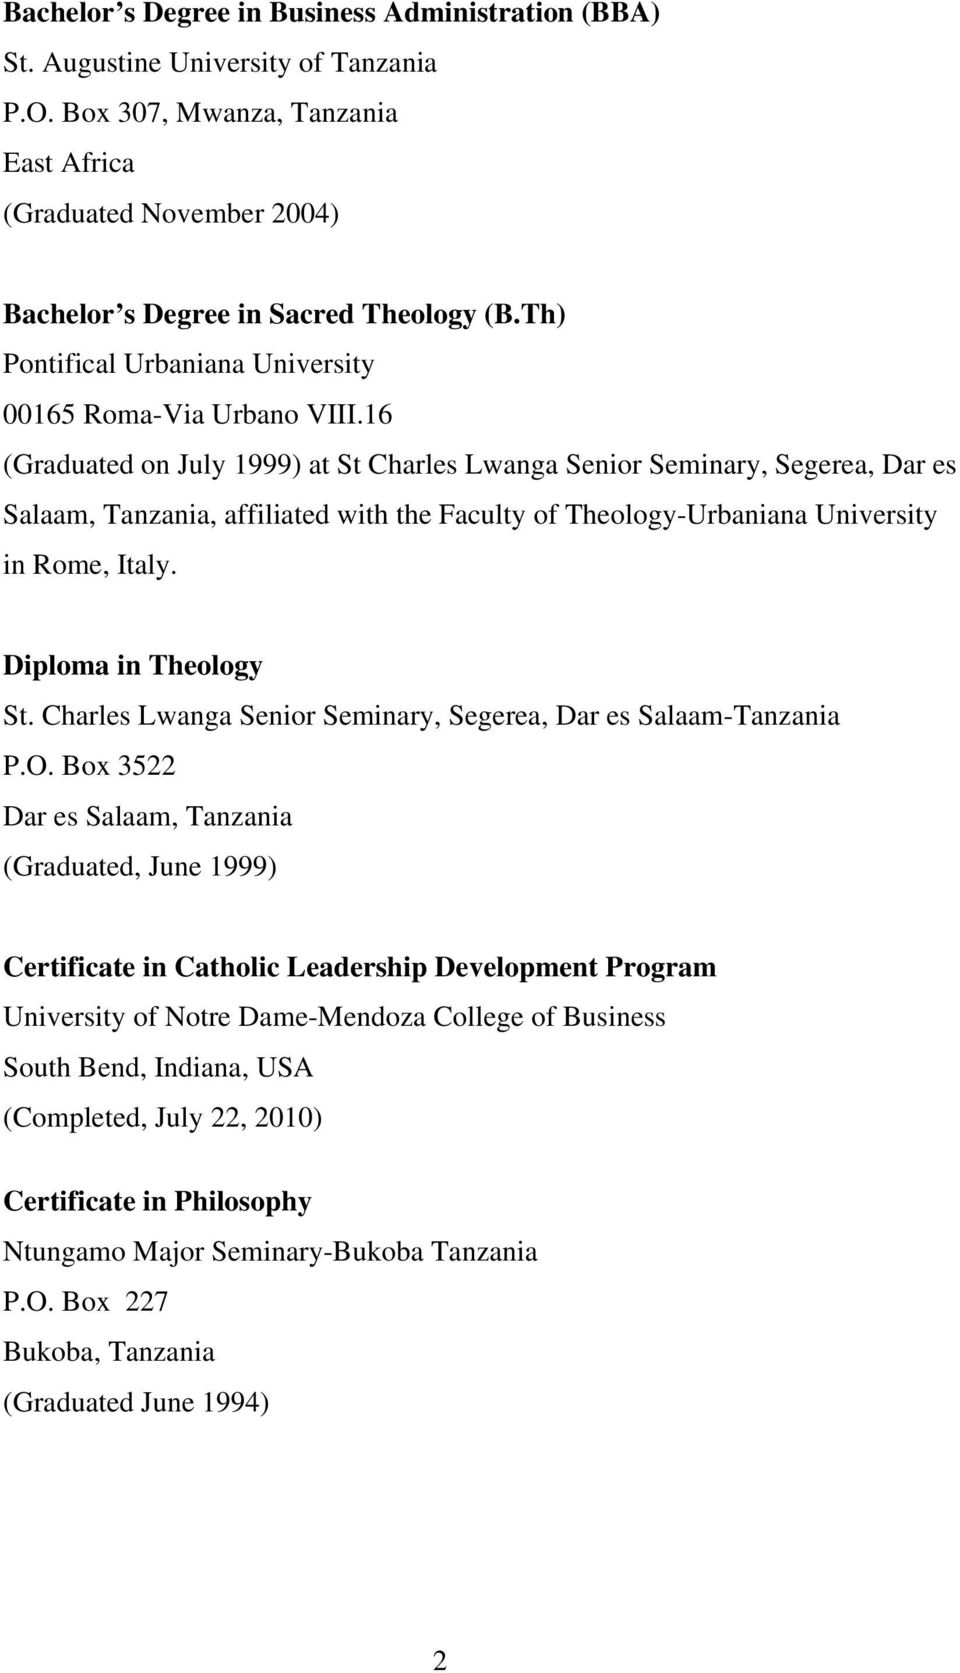 16 (Graduated on July 1999) at St Charles Lwanga Senior Seminary, Segerea, Dar es Salaam, Tanzania, affiliated with the Faculty of Theology-Urbaniana University in Rome, Italy. Diploma in Theology St.